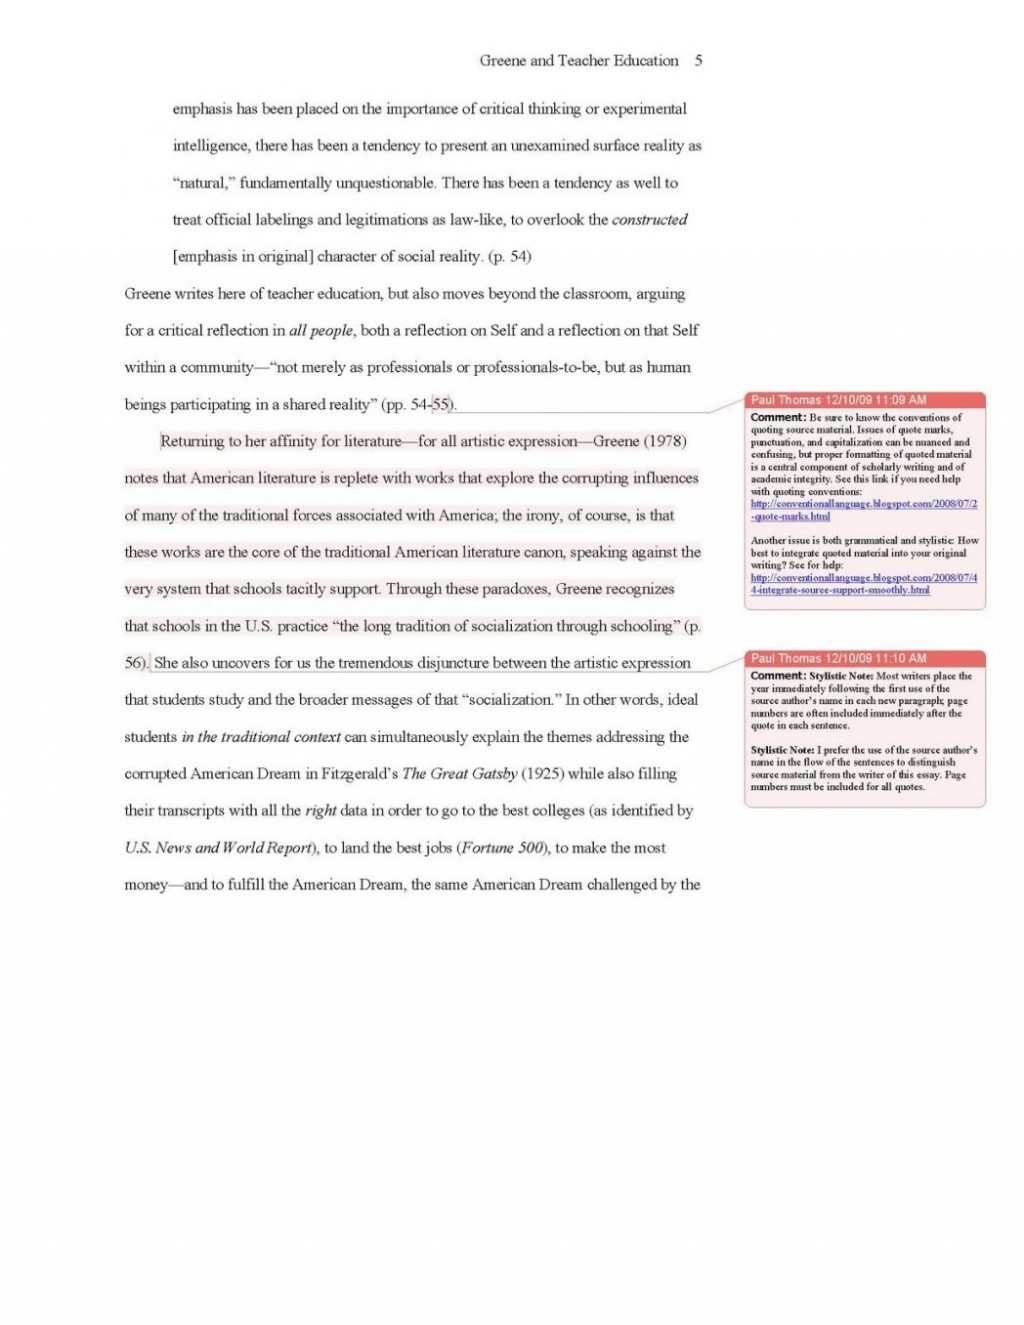 008 Literature Review Study Useful Phrases College Essay Consultant Near M Me Best Consultants Application Fees 1048x1357 Fantastic Large